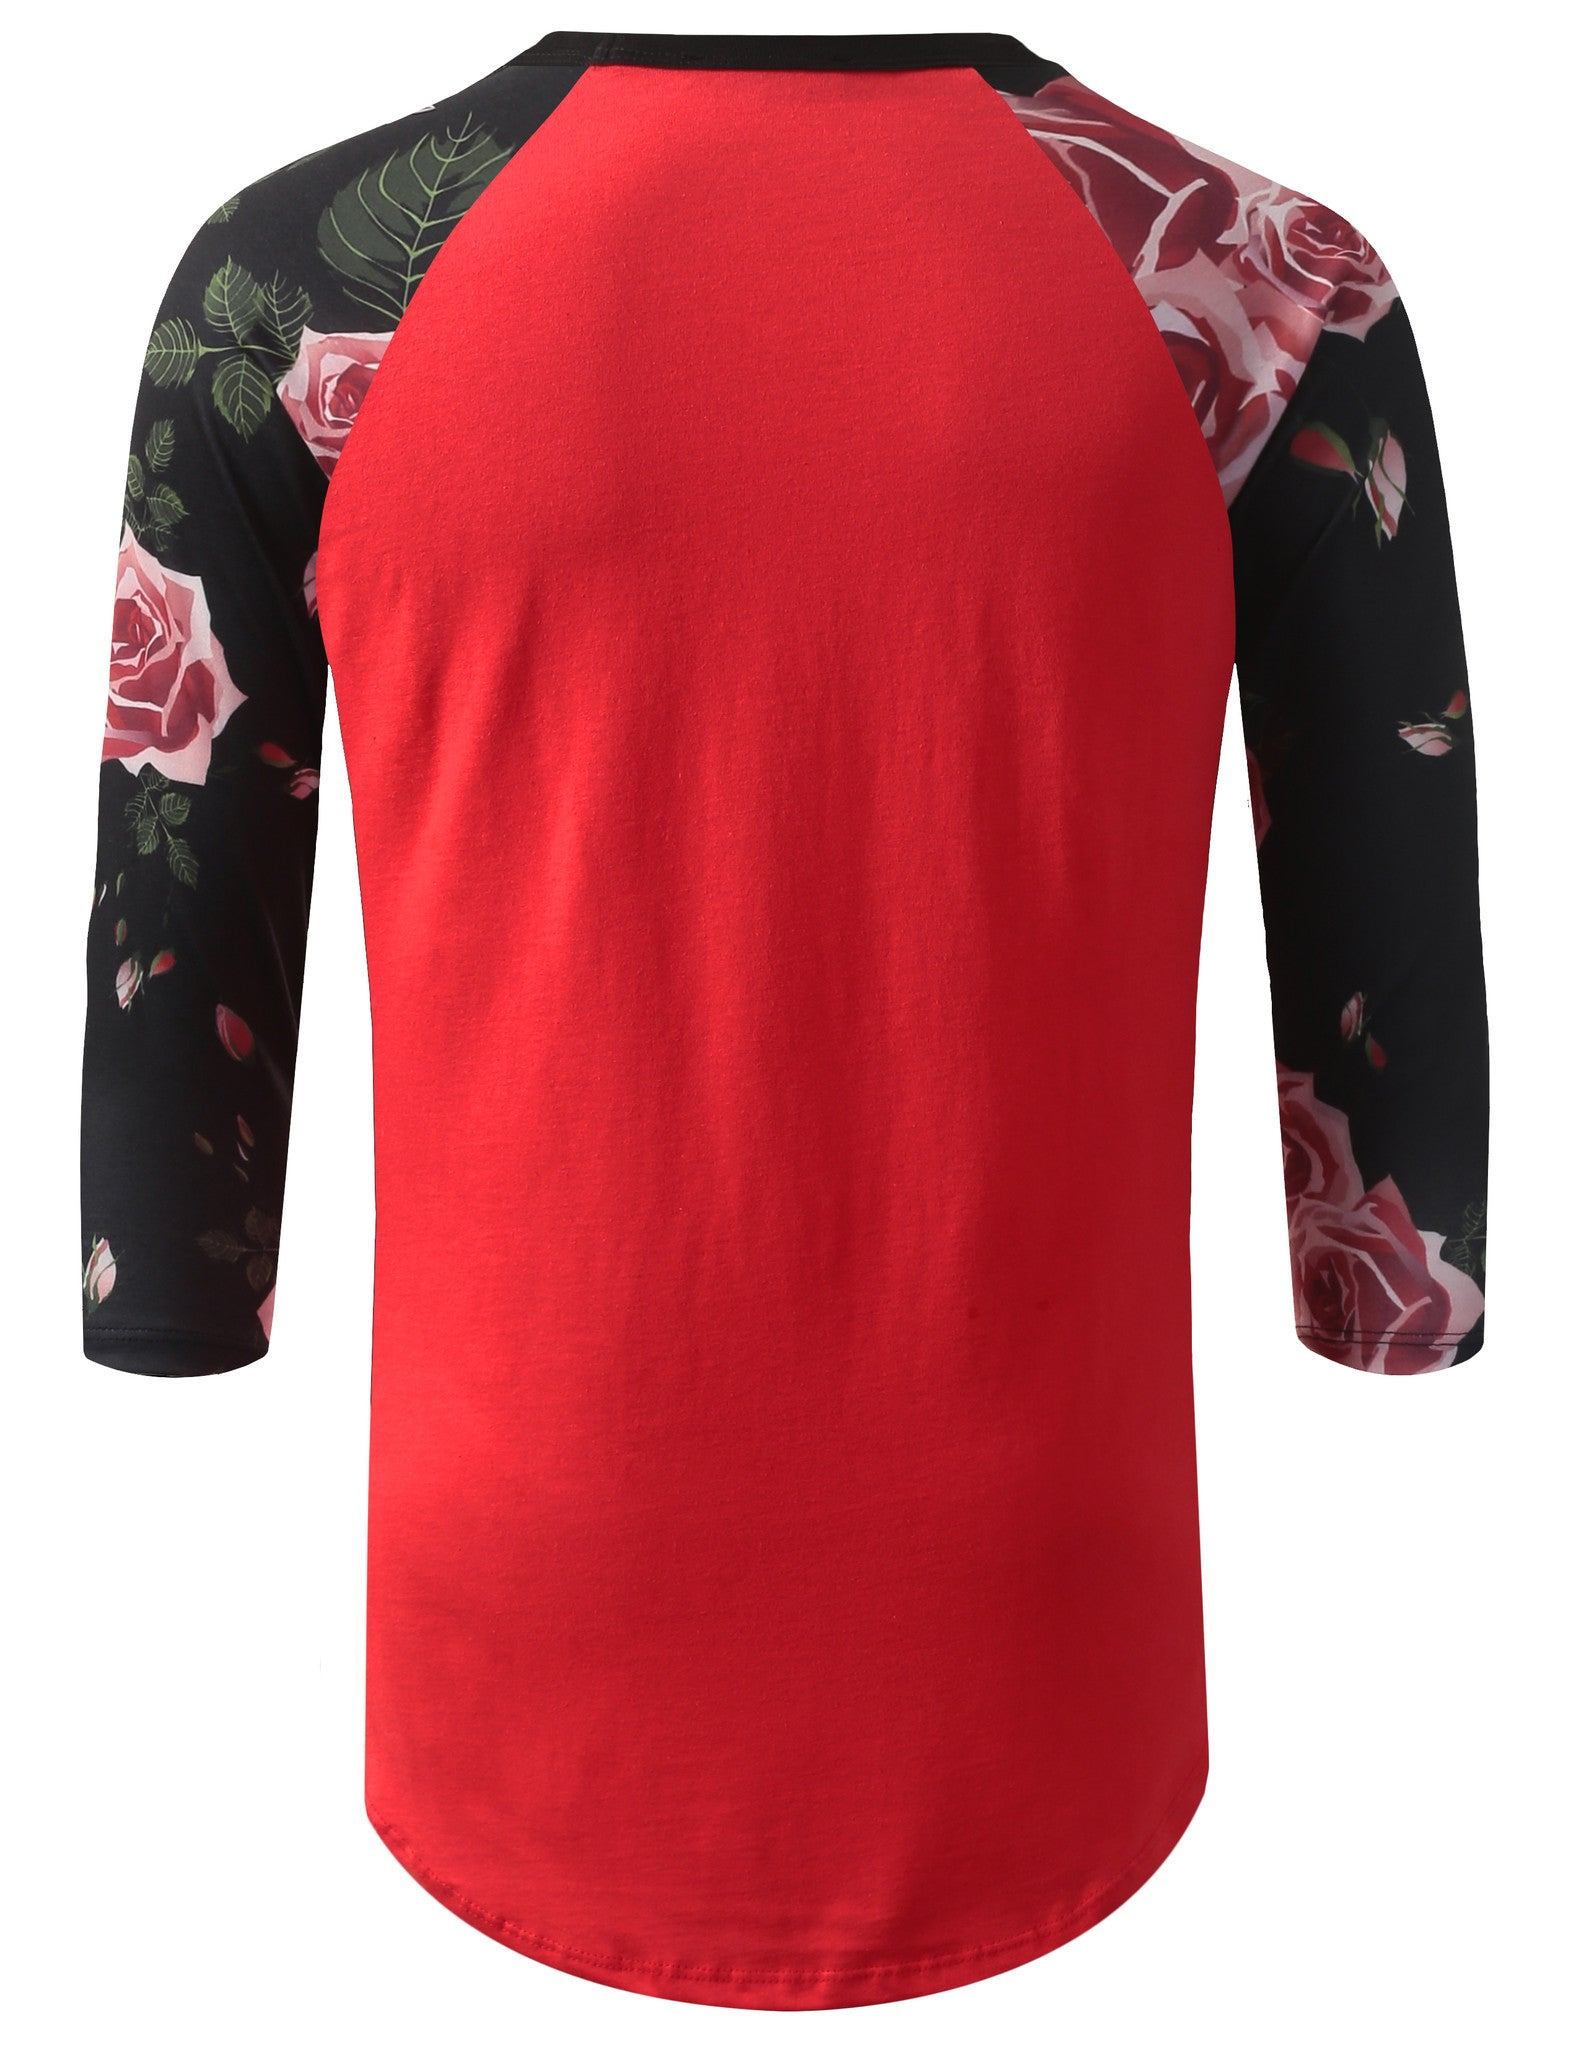 RED 3/4 Sleeve Roses Red Longline Raglan Baseball Shirt- URBANCREWS